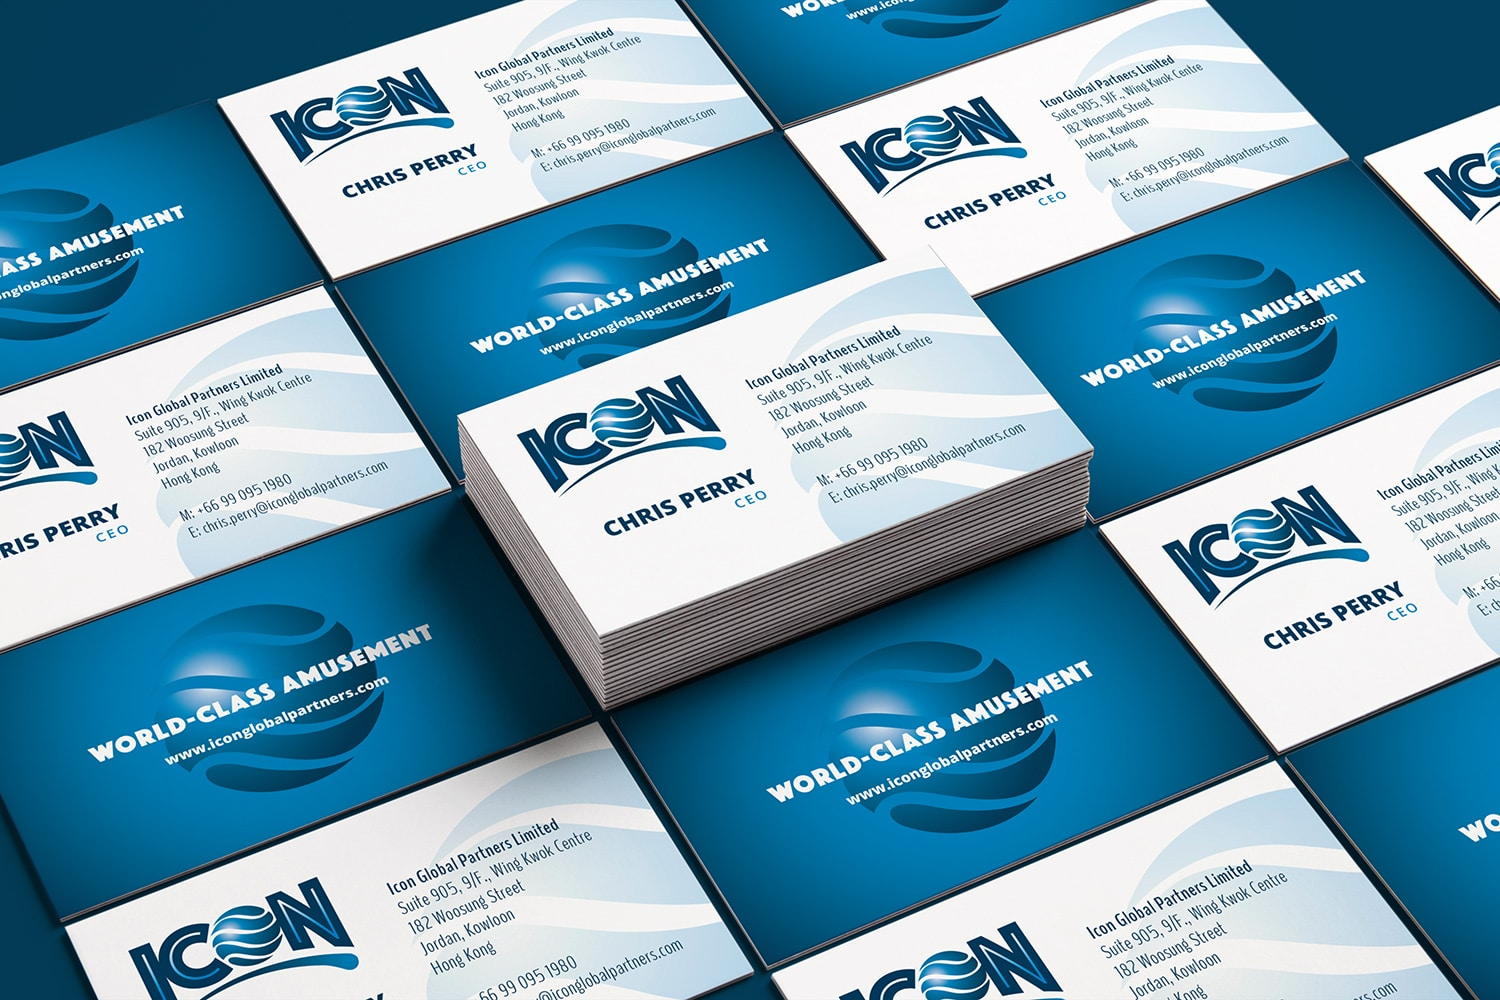 ICON business card design